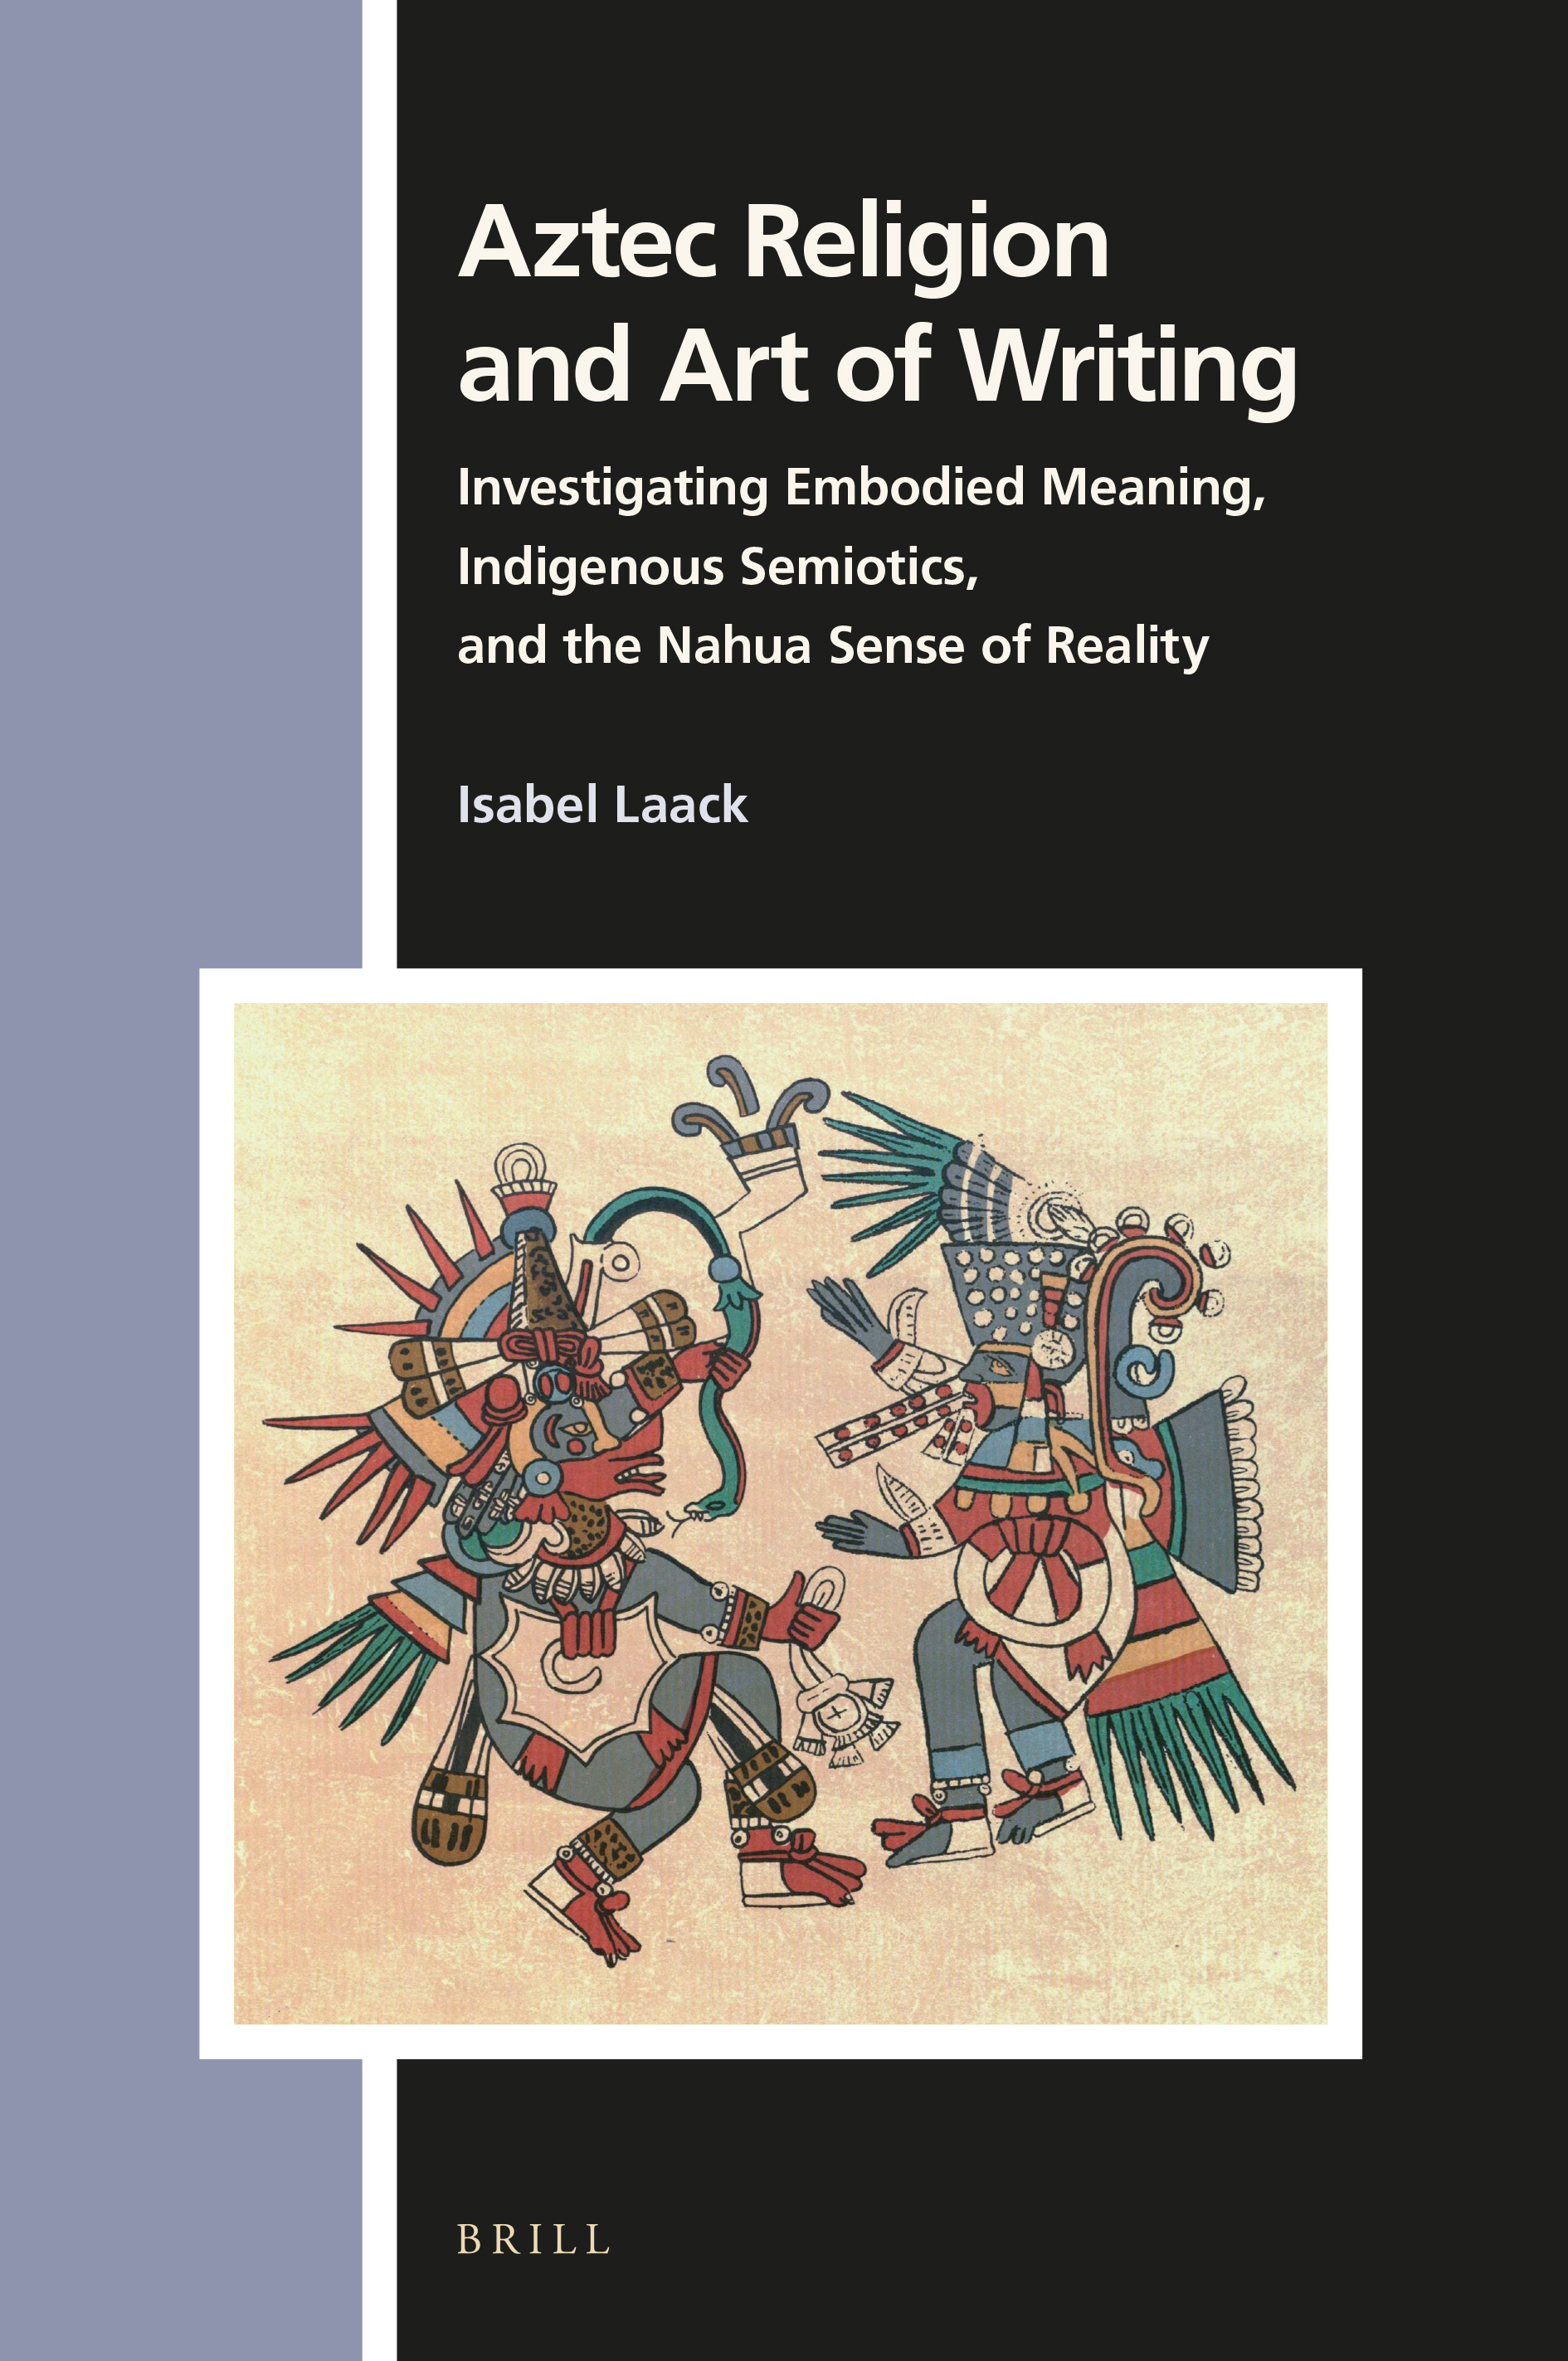 Book Cover of Aztec Religion and the Art of Writing